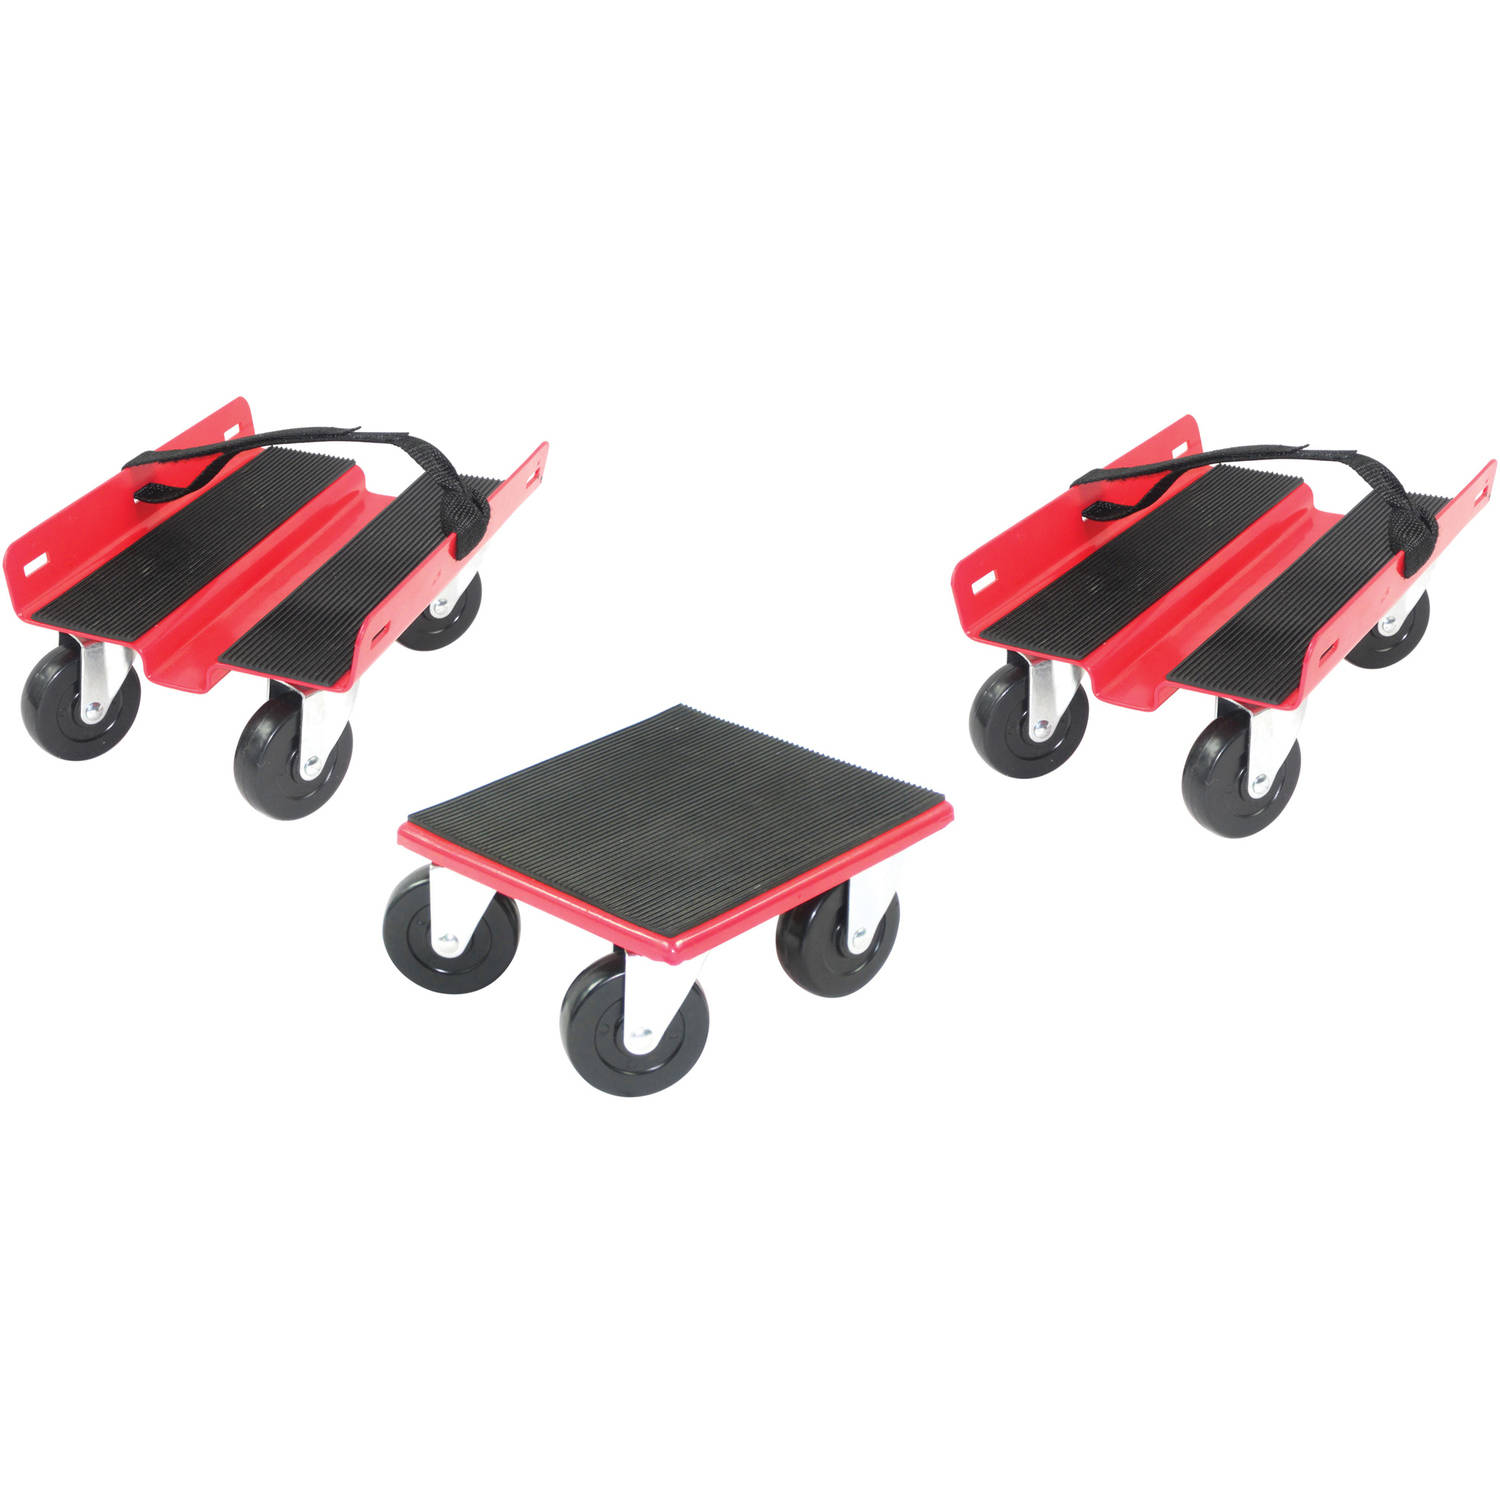 Extreme Max Economy Snowmobile Dolly System